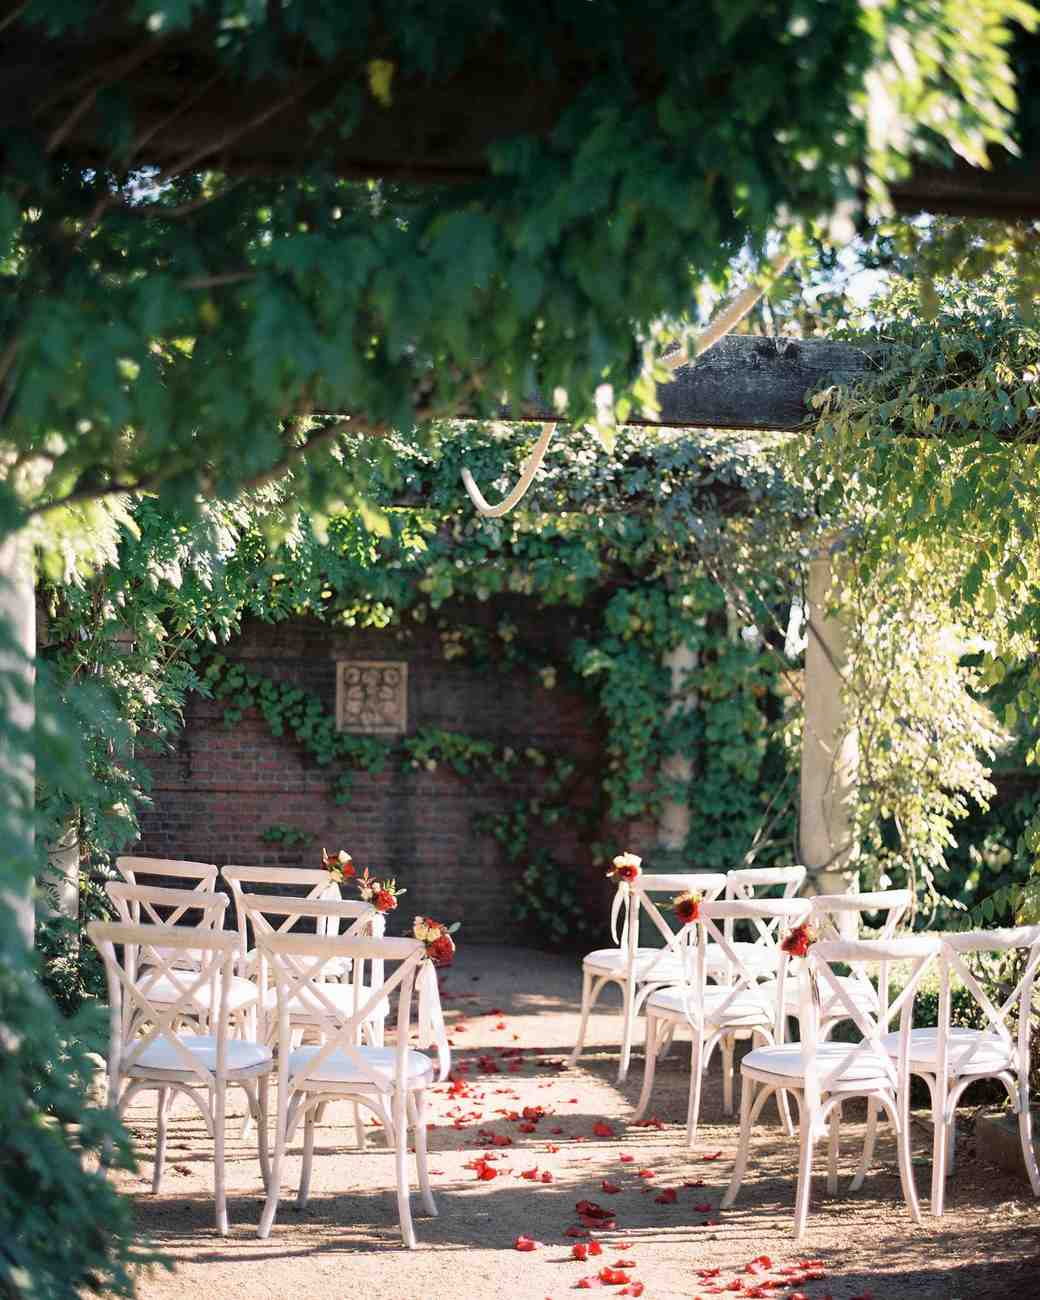 15 Venues Chicago: 25 Beautiful Garden Wedding Venues